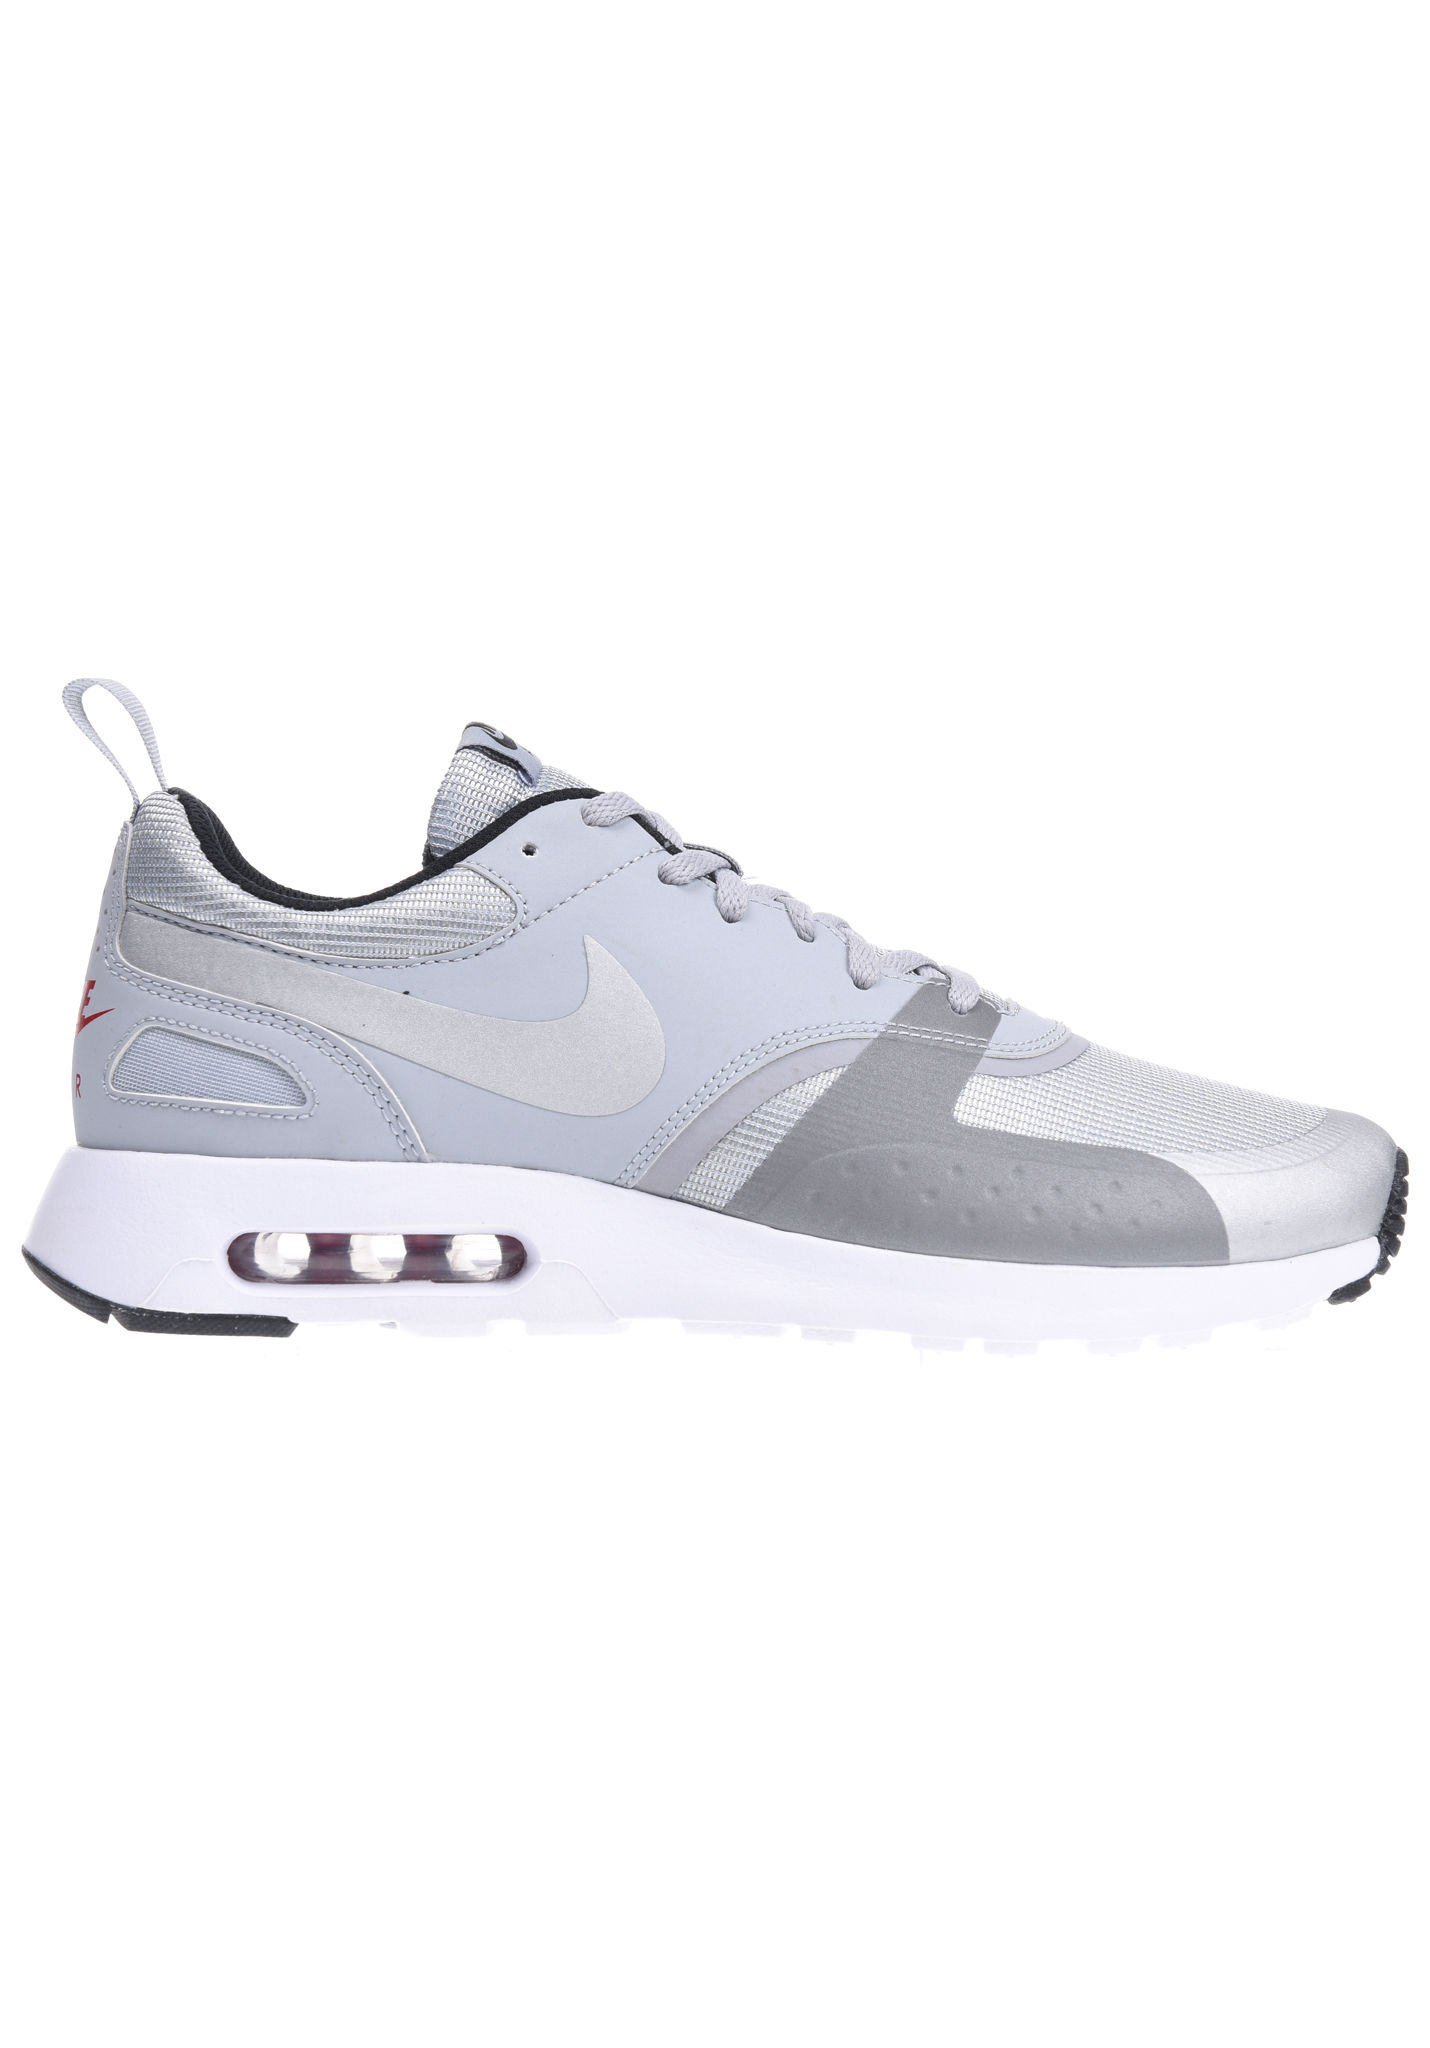 buy popular e33f3 98075 NIKE SPORTSWEAR Air Max Vision Premium - Sneakers for Men - Grey - Planet  Sports